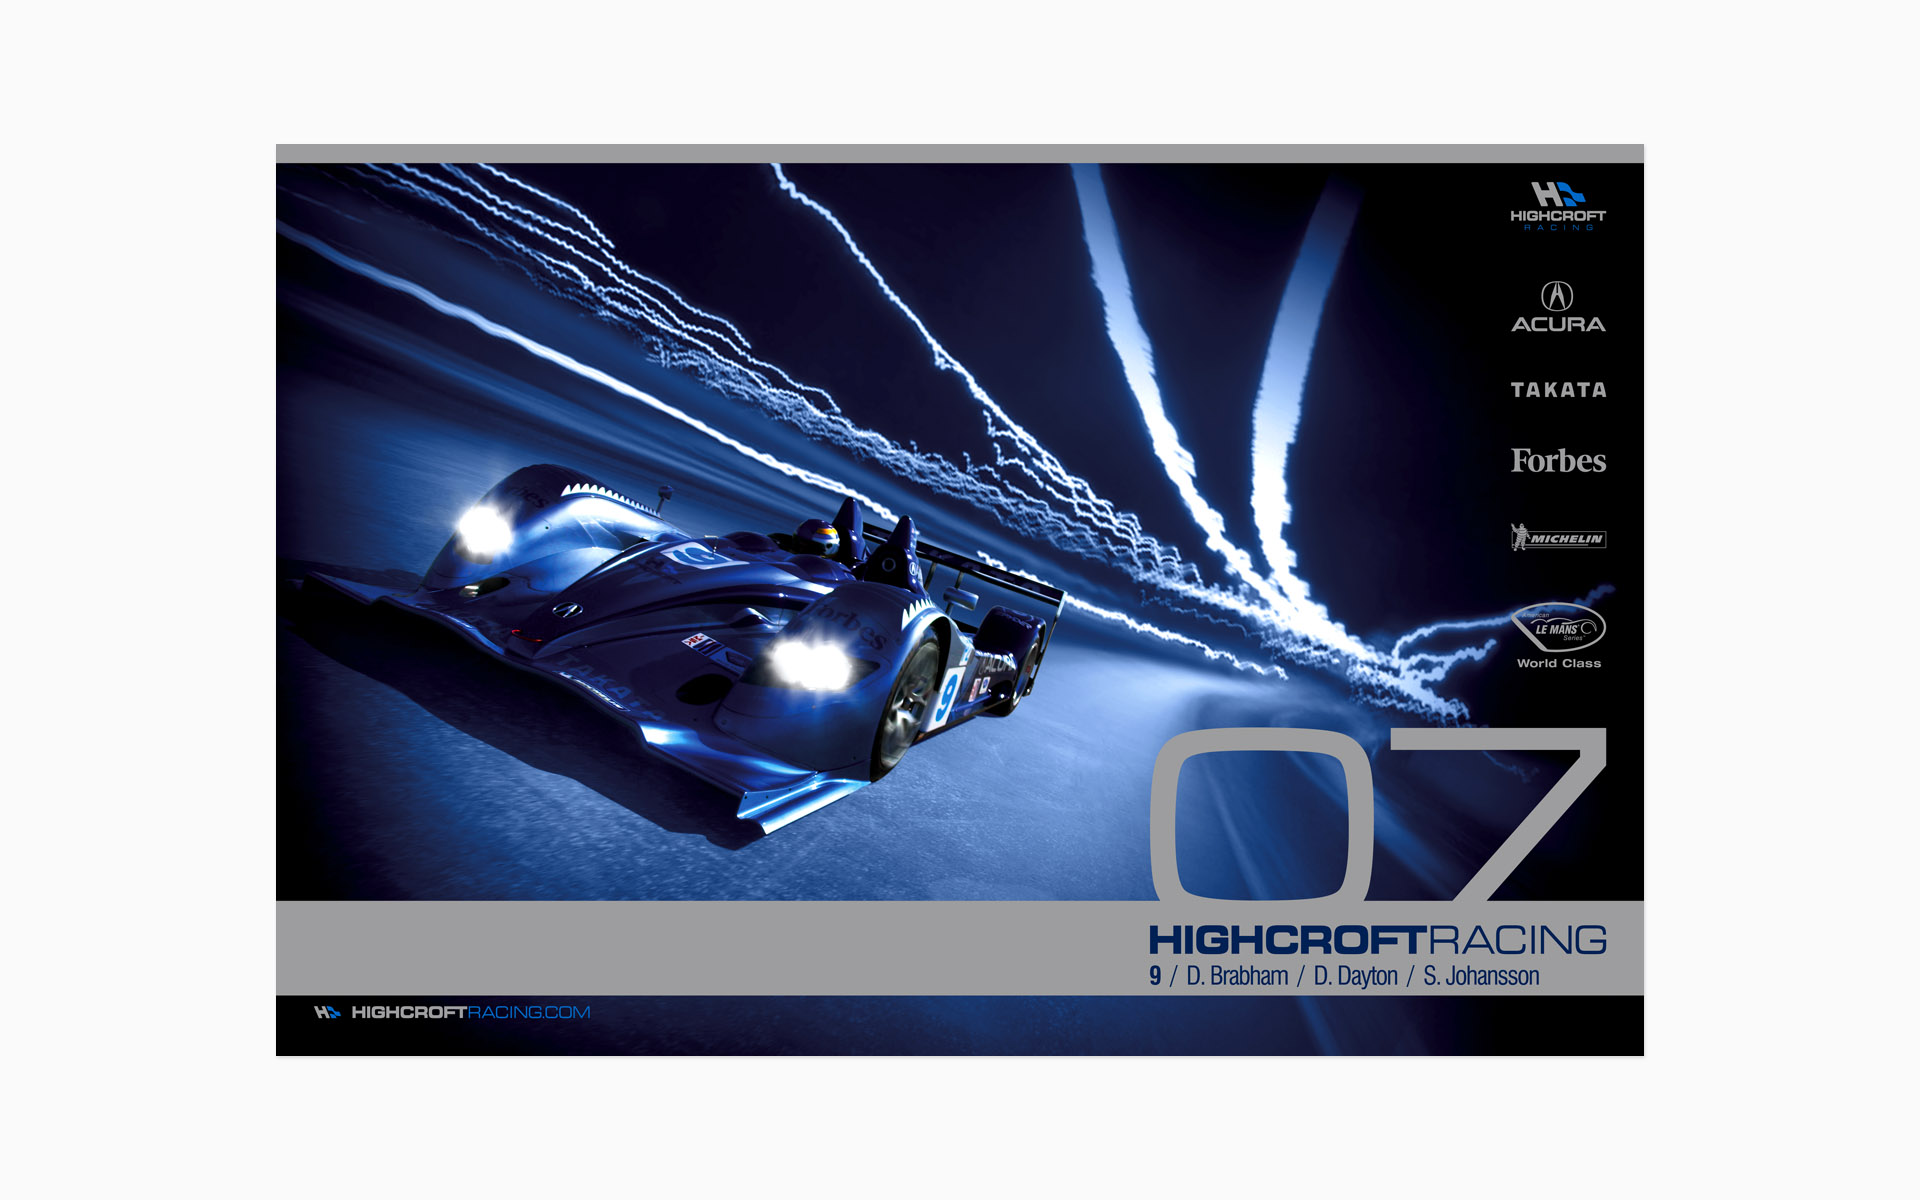 2007 Highcroft Racing Acura Poster